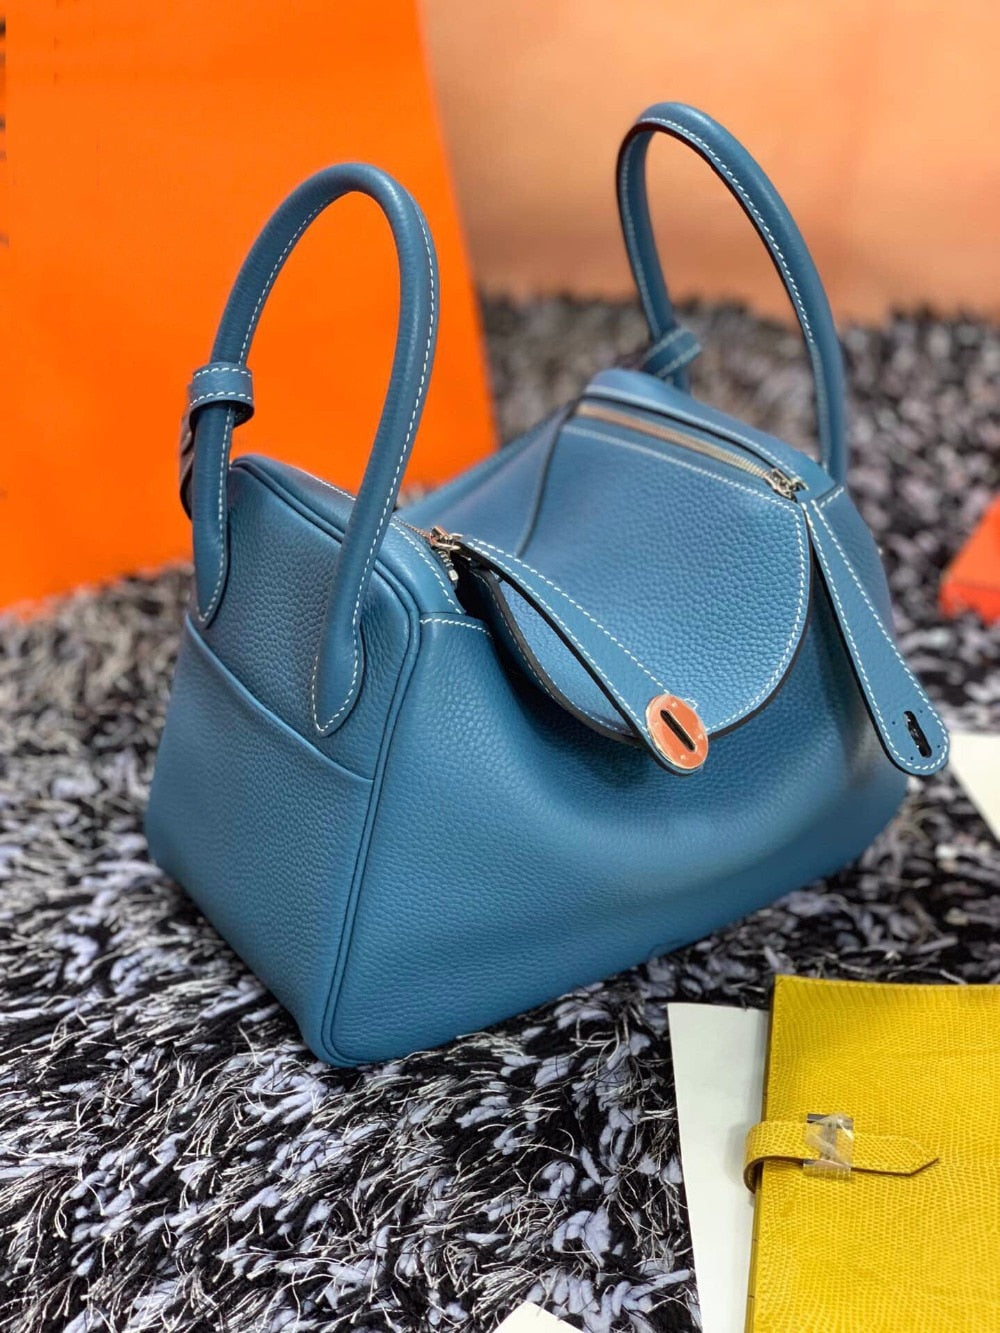 Bags for women 100% Natura Leather handbags Genuine leather Designer Luxury Brand fashion Women's bags Free shipping 26/30cm